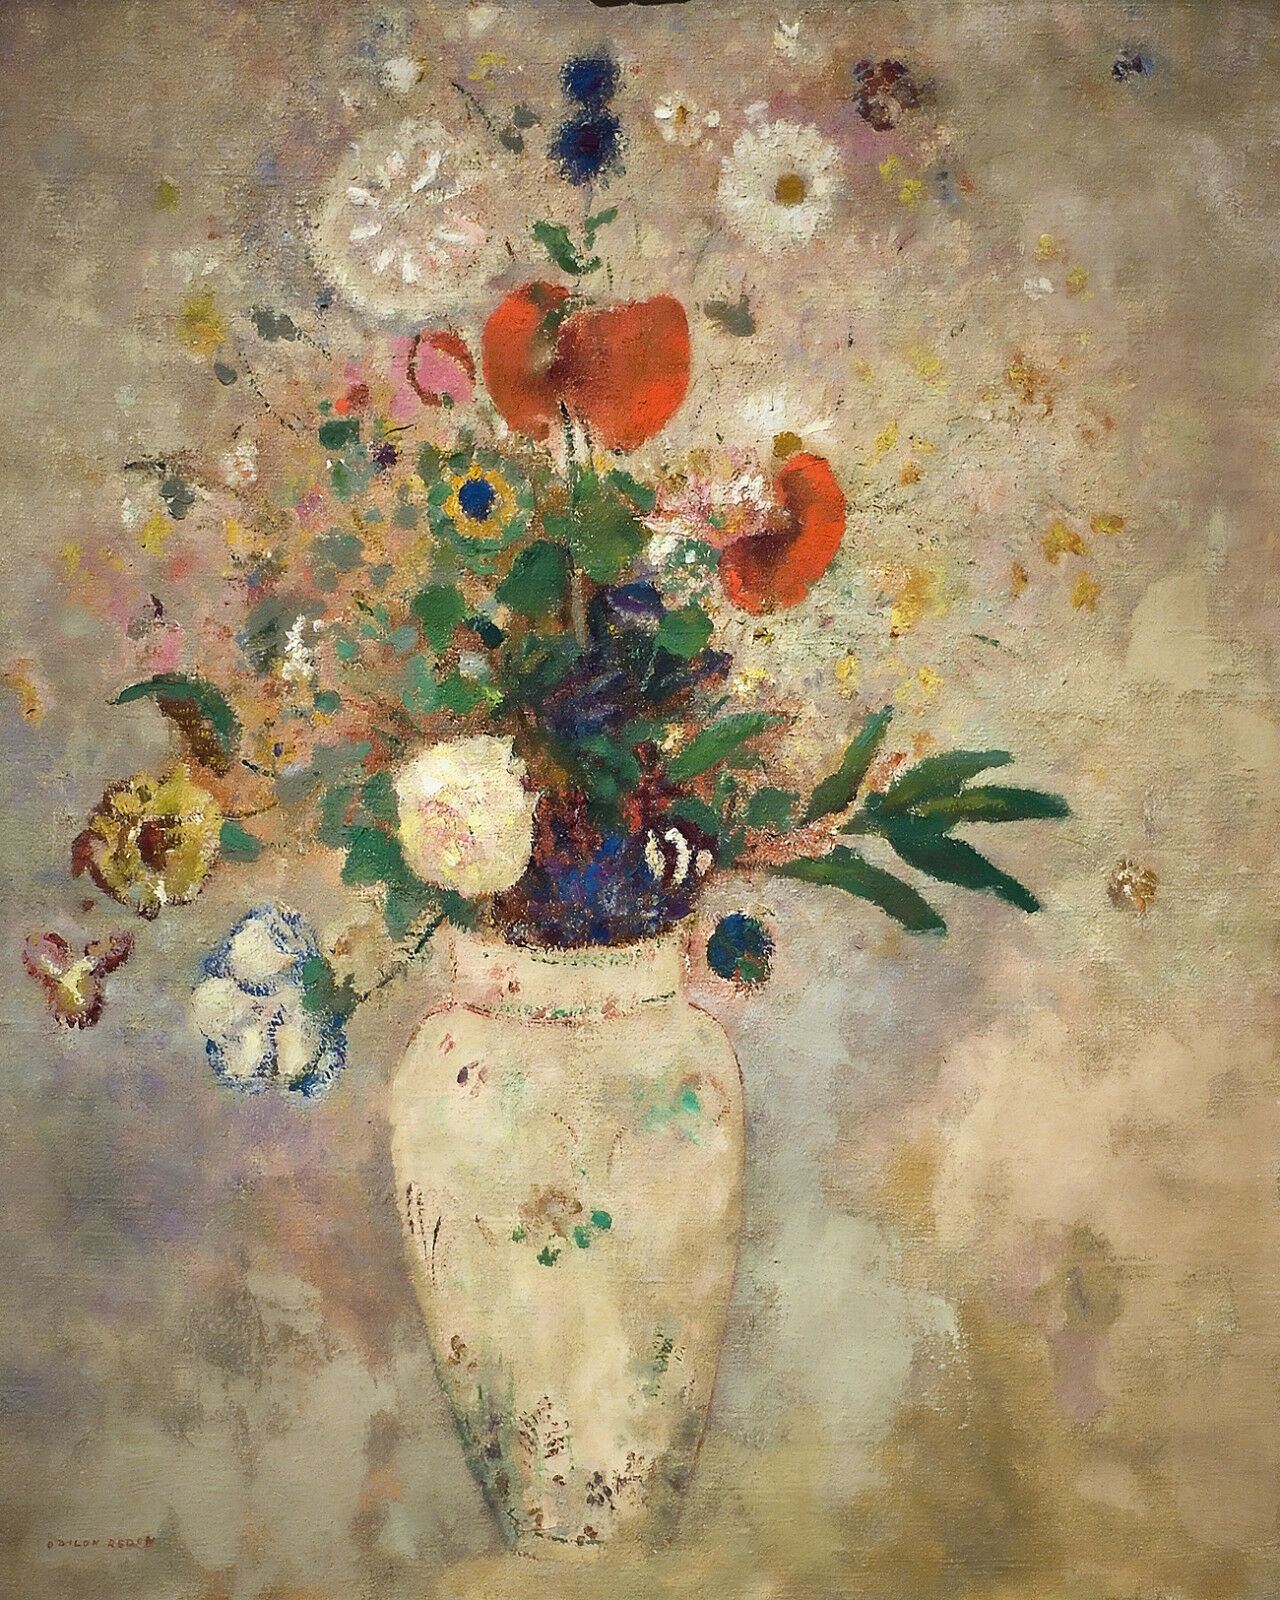 A Vase of Flowers - rotdon  CANVAS or PRINT WALL ART